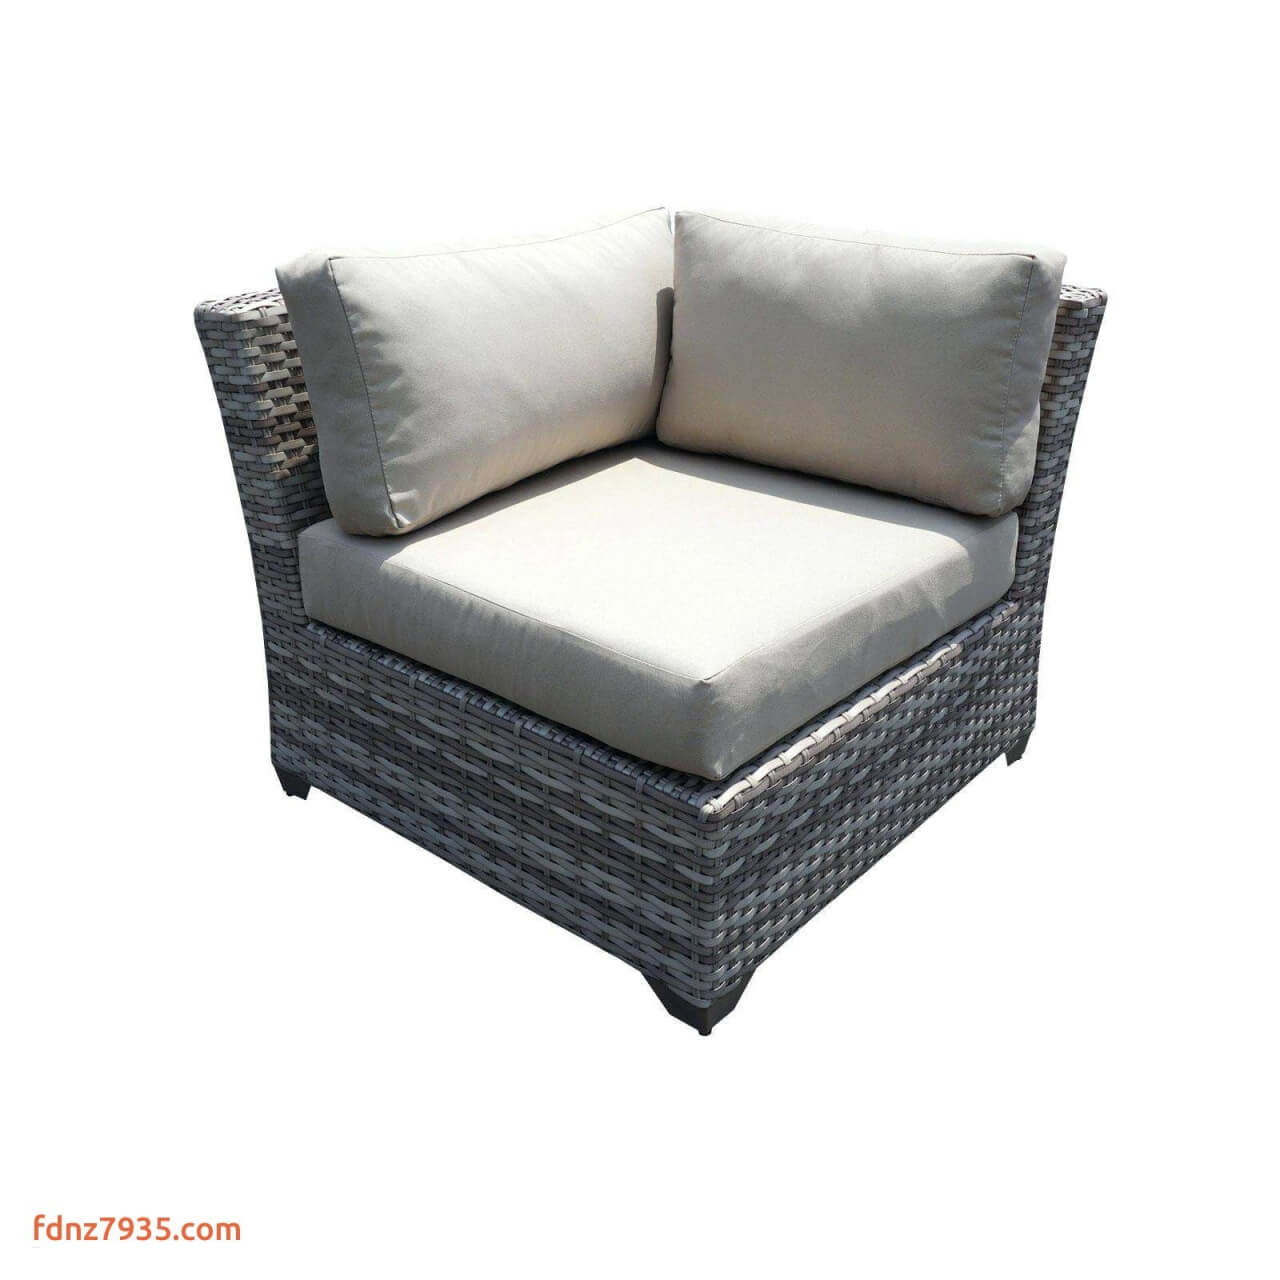 DEEP SEAT PATIO CUSHIONS IDEAS IN ALL SIDES